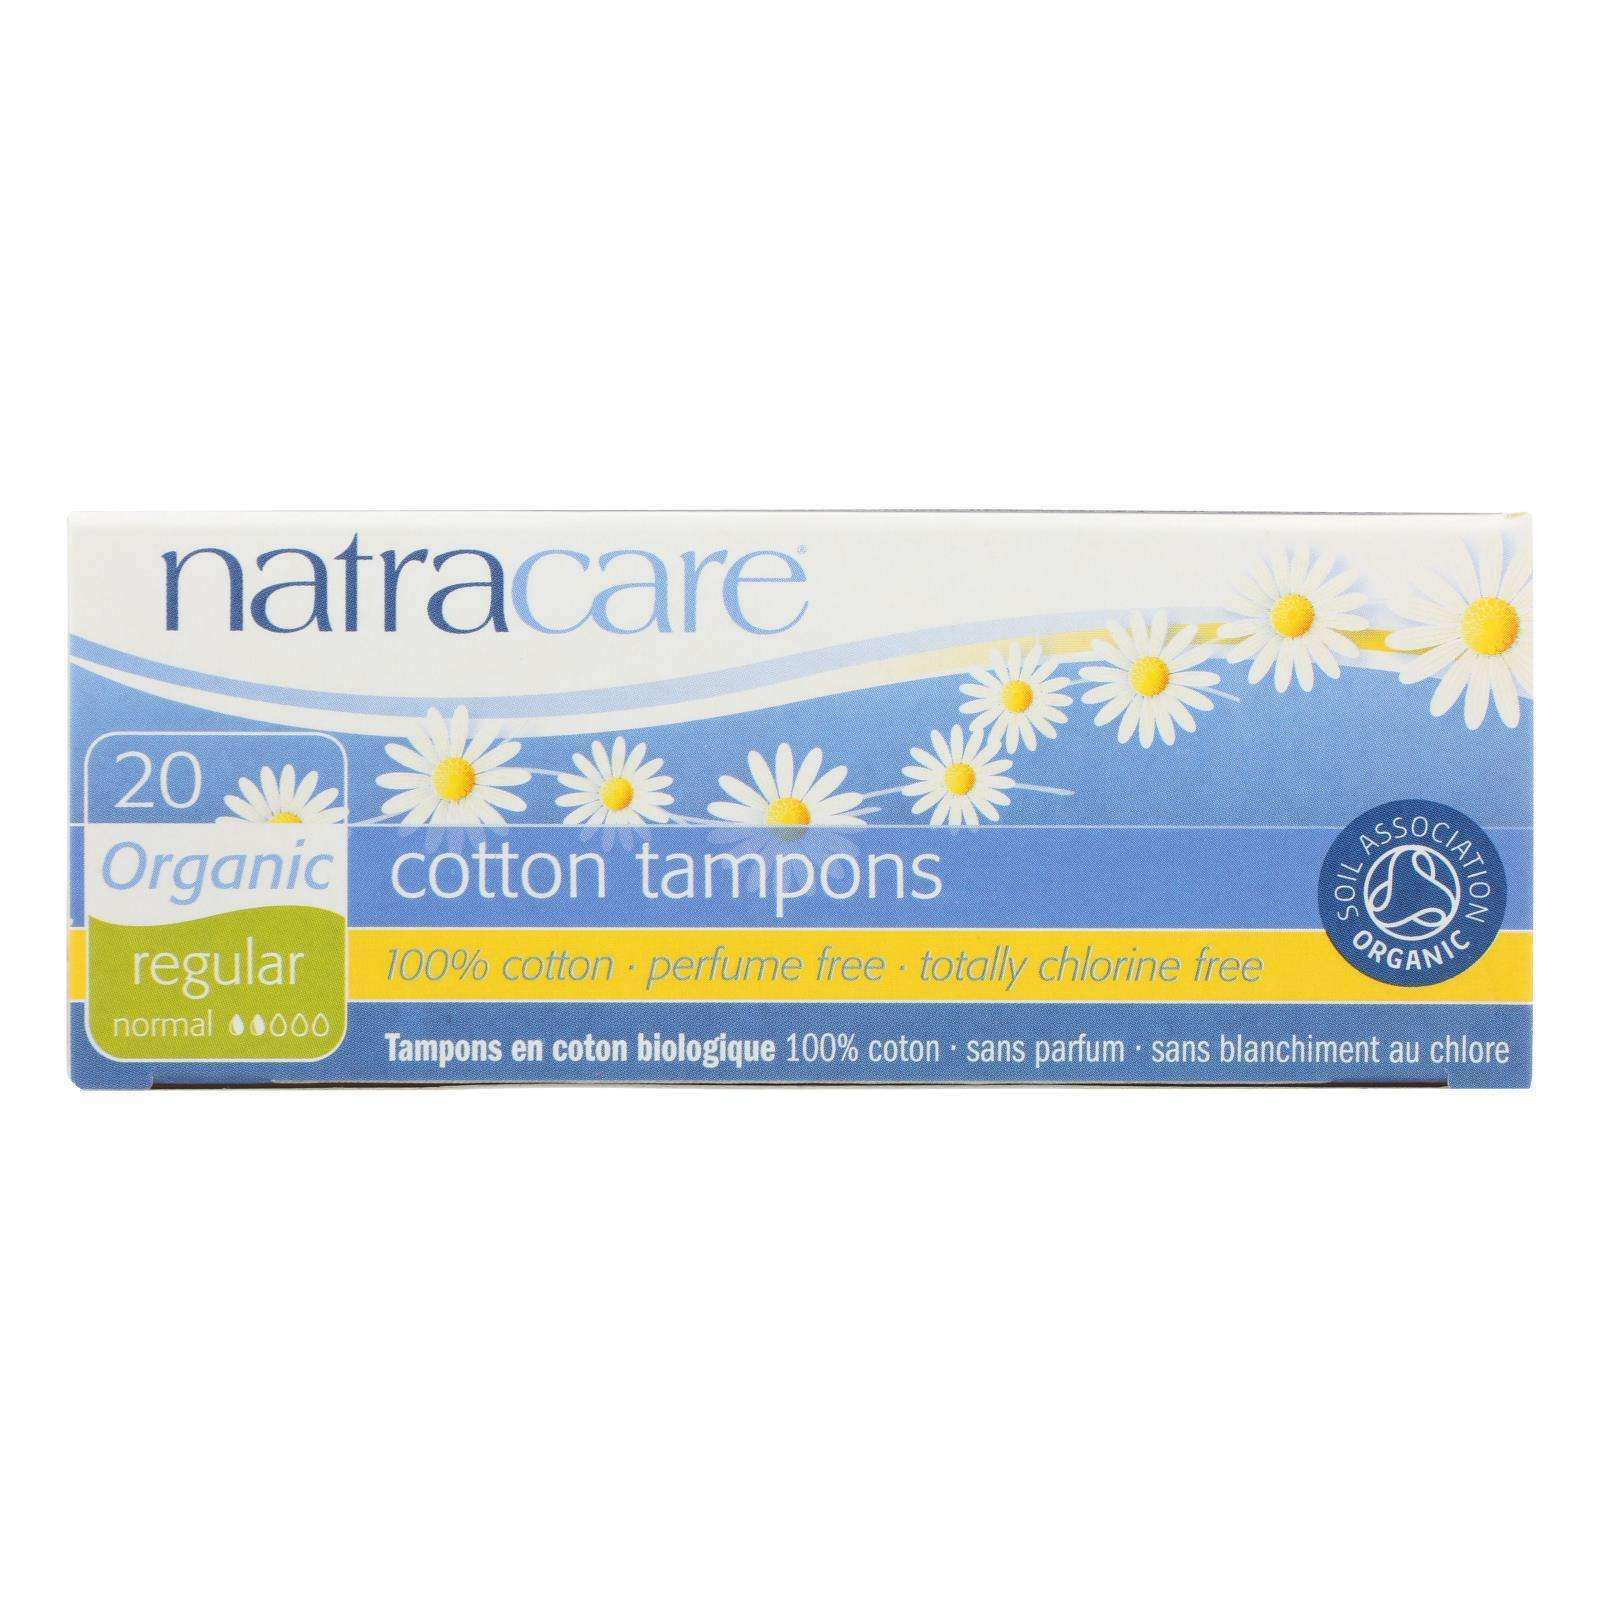 Natracare 100% Organic Cotton Tampons Regular - 20 Tampons - BeeGreen